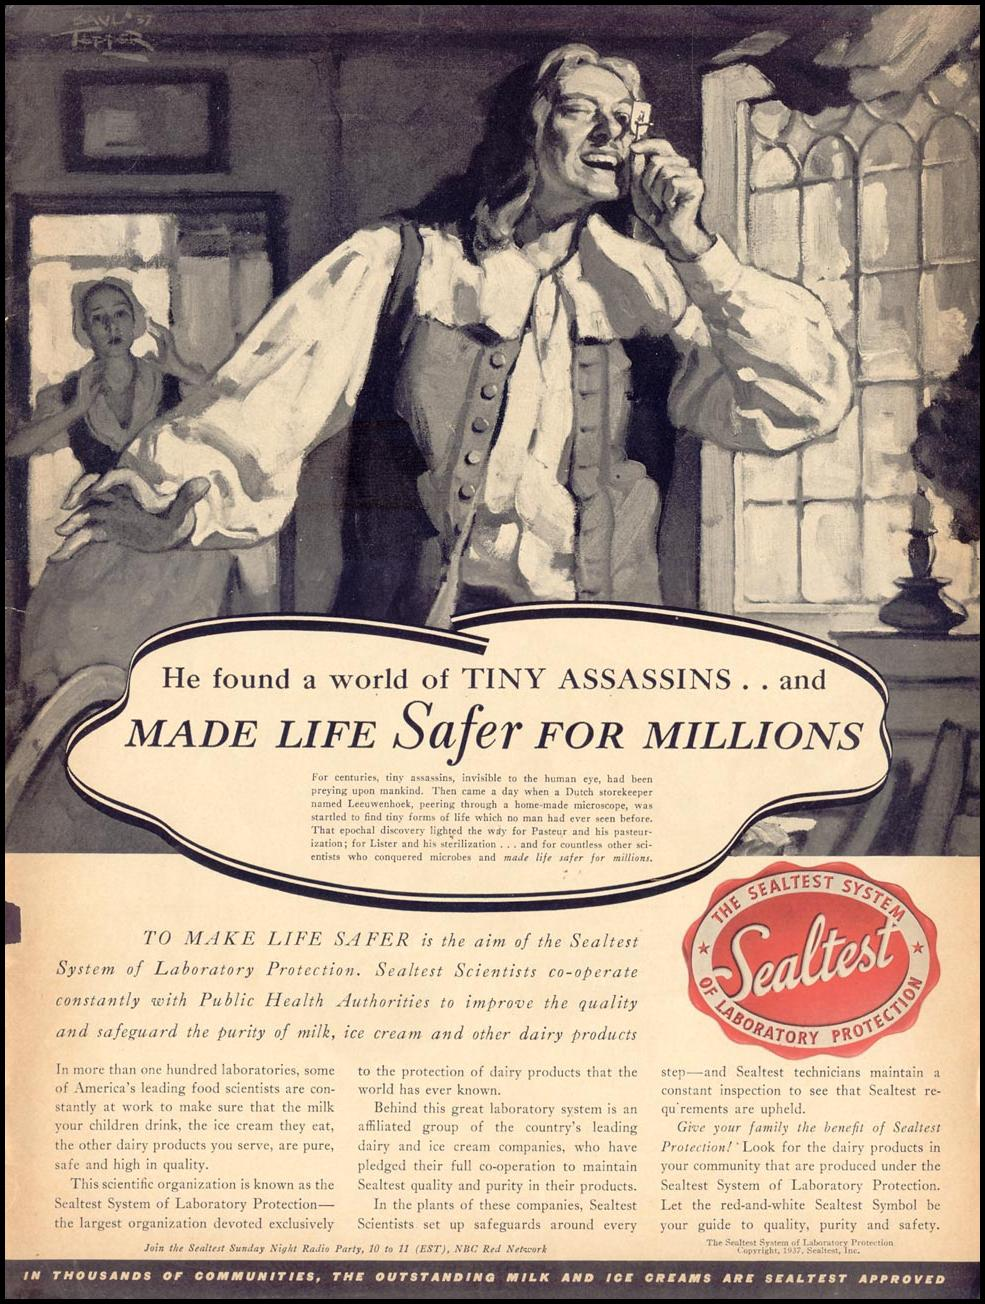 SEALTEST SYSTEM OF LABORATORY PROTECTION LIFE 09/20/1937